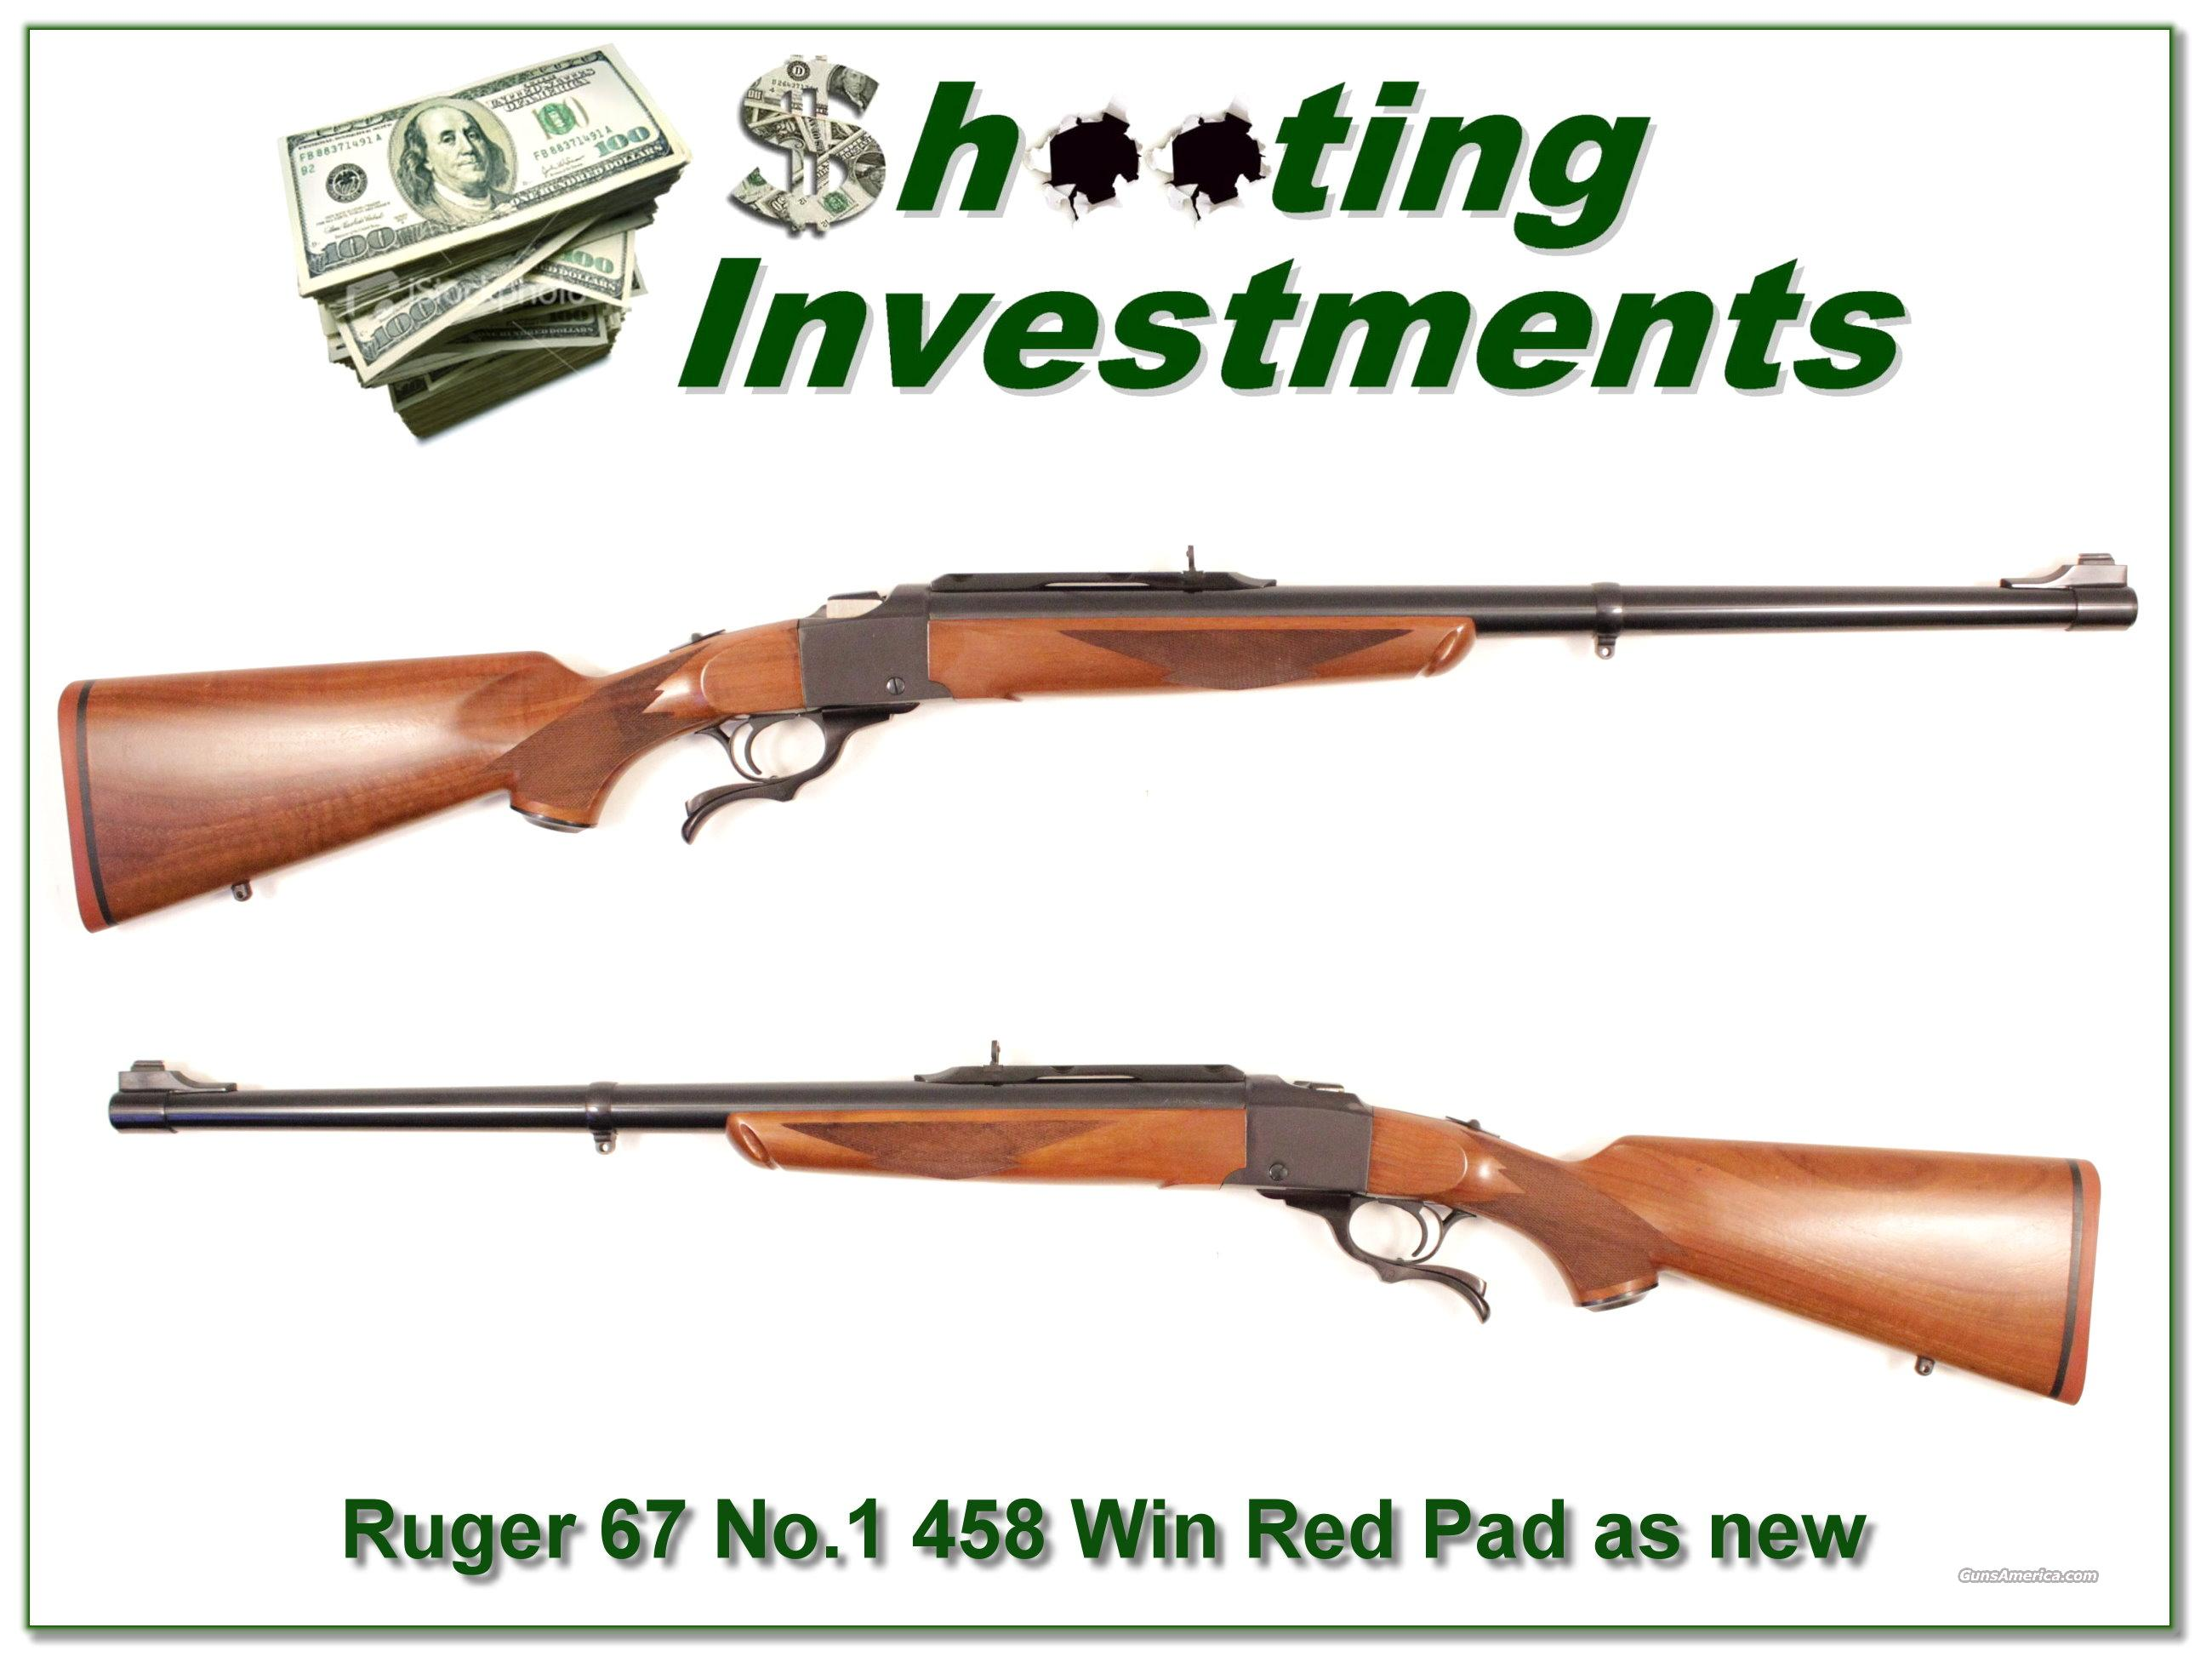 Ruger No. 1 #1 Tropical Red Pad 458 Winchester as new  Guns > Rifles > Ruger Rifles > #1 Type